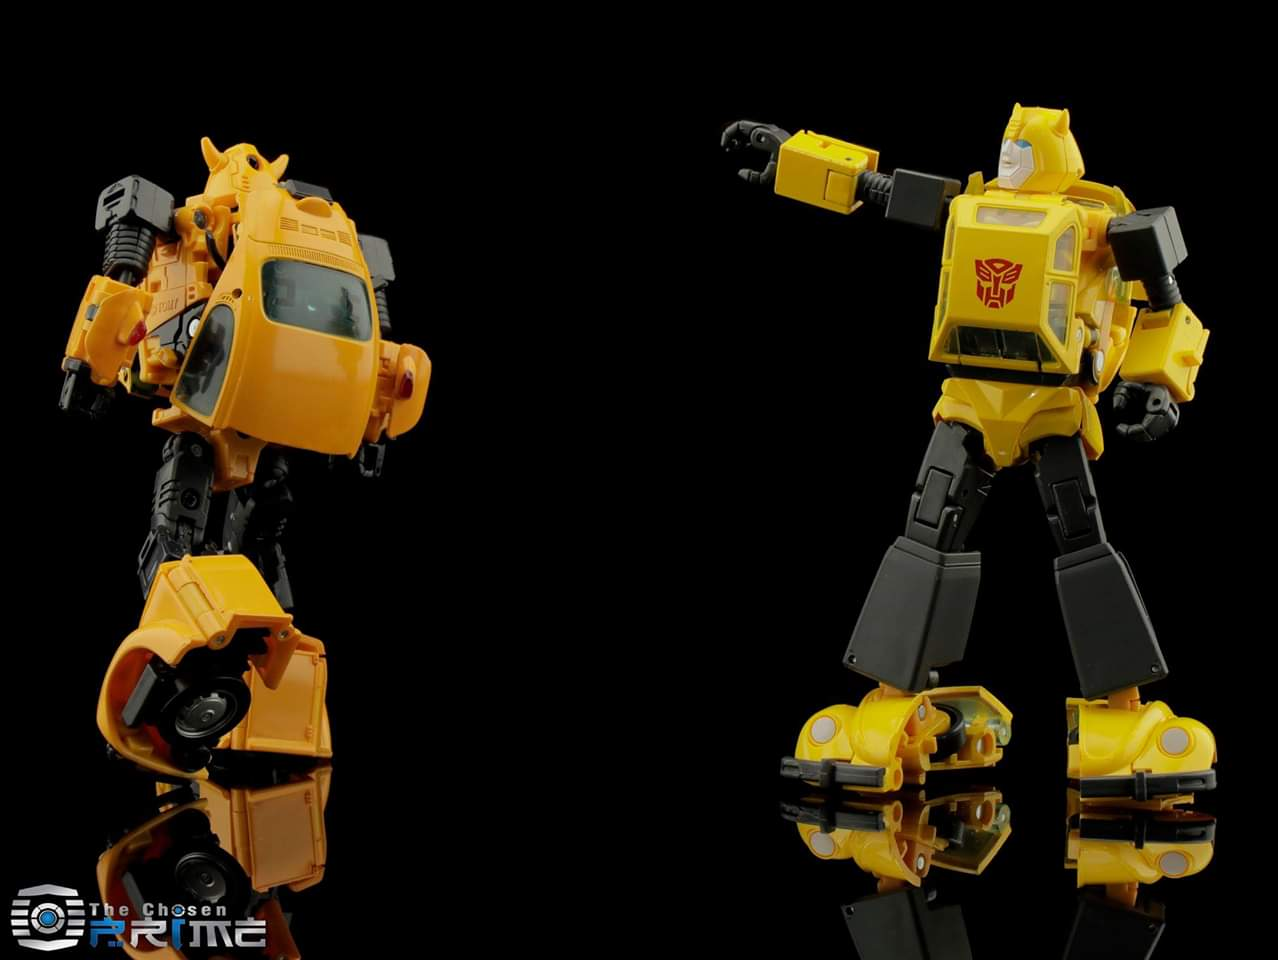 [Masterpiece] MP-45 Bumblebee/Bourdon v2.0 - Page 2 OLeBIHVa_o